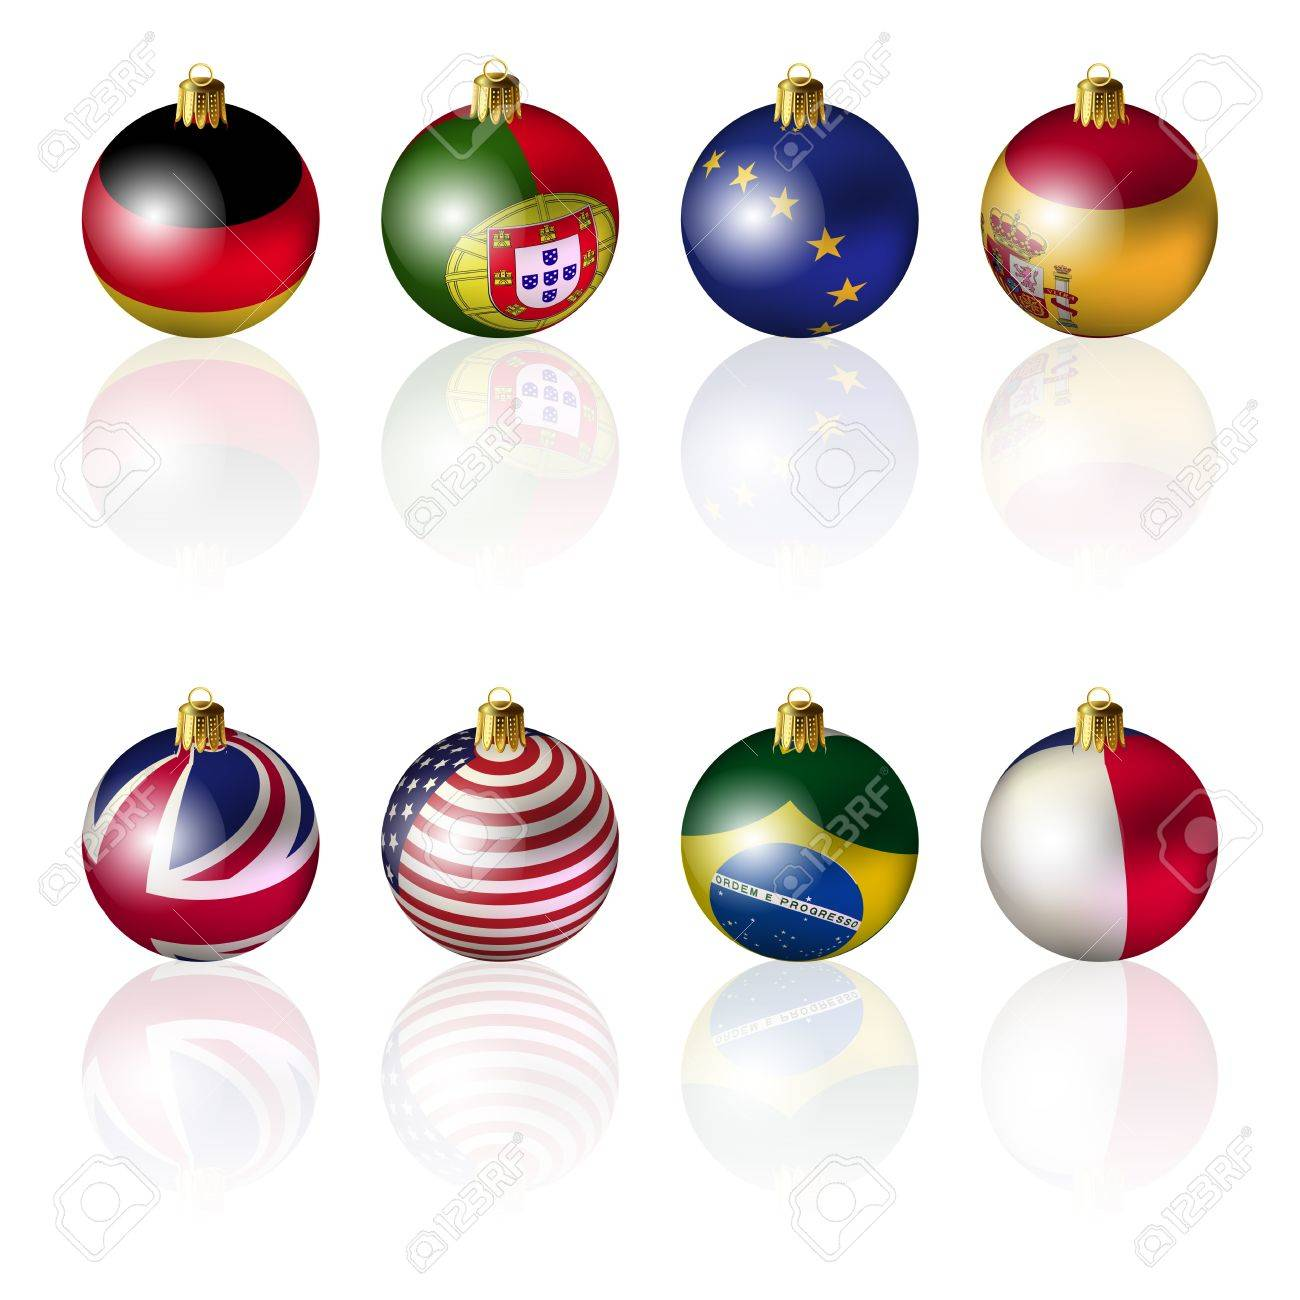 Isolated International Christmas Balls On White Background Royalty ...